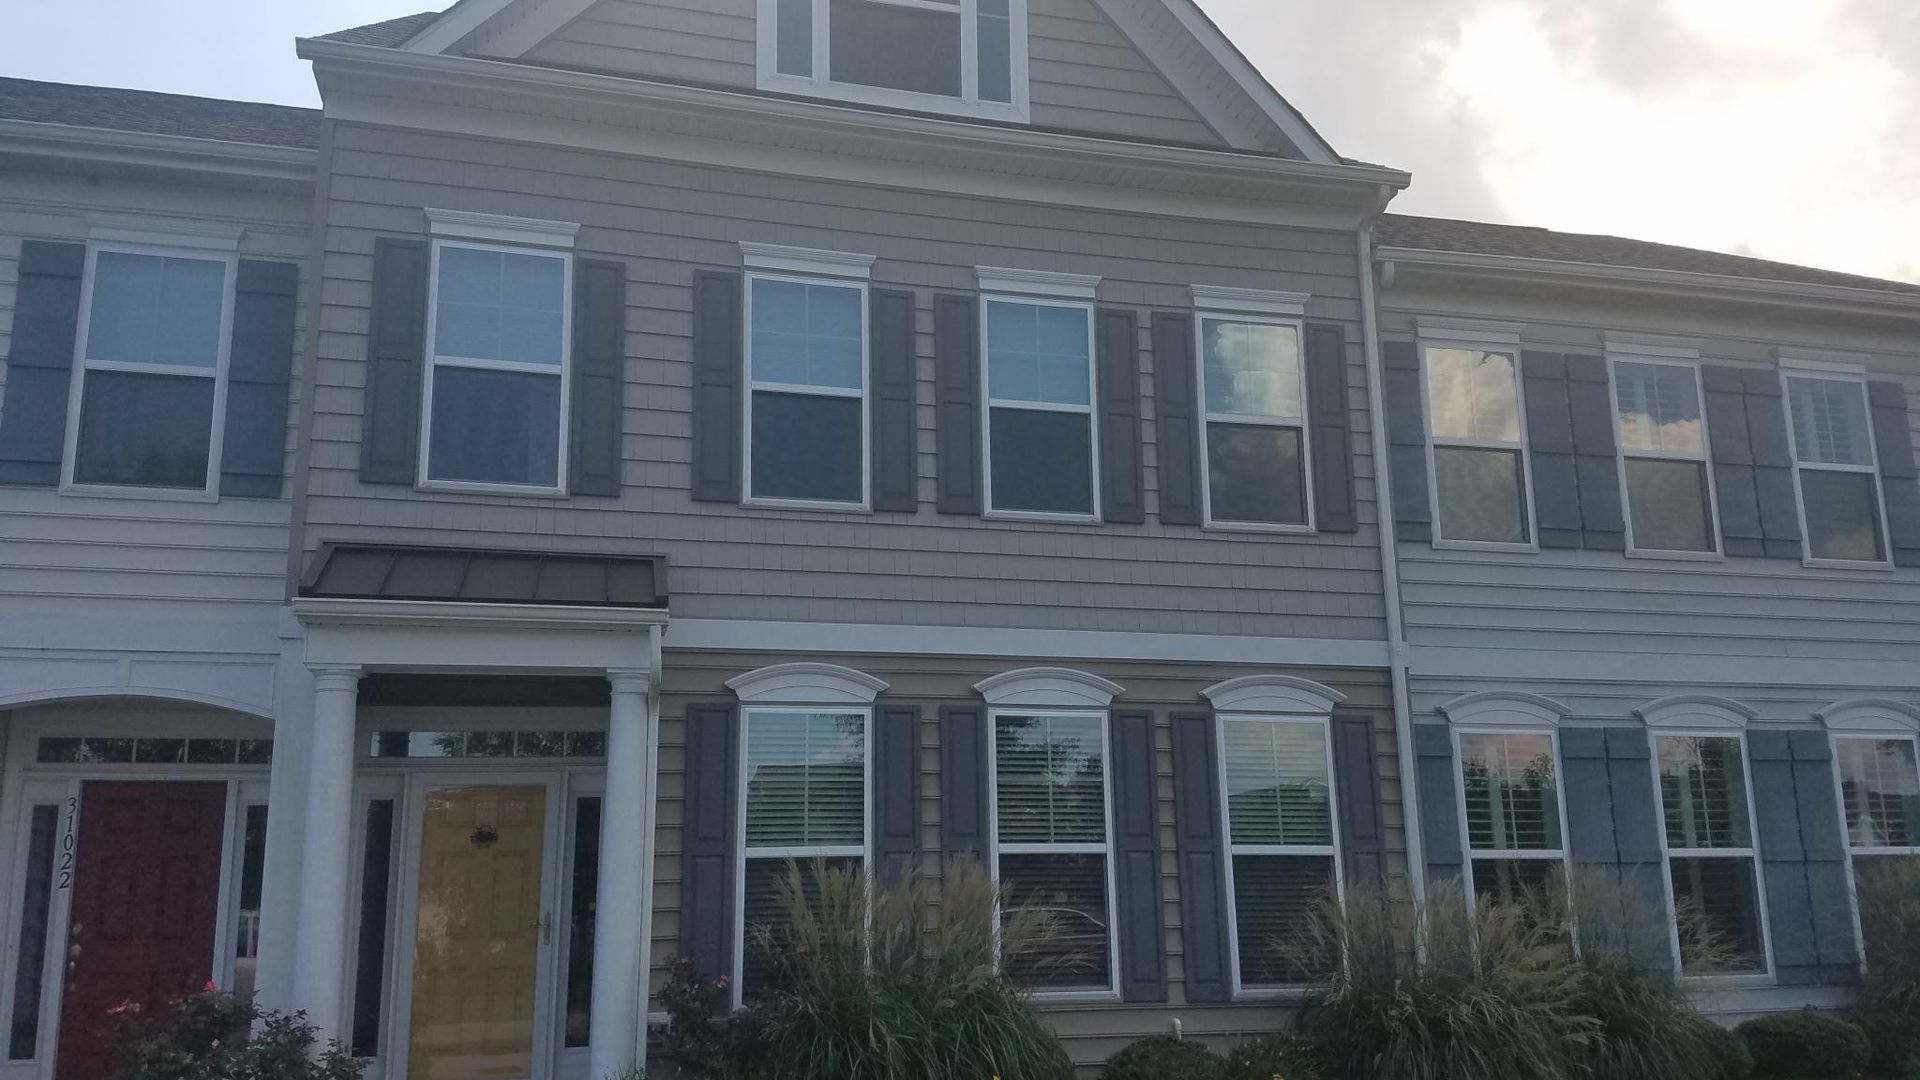 Excellent Townhomes For Rent In Delaware 174 Rentals Zillow Home Interior And Landscaping Transignezvosmurscom